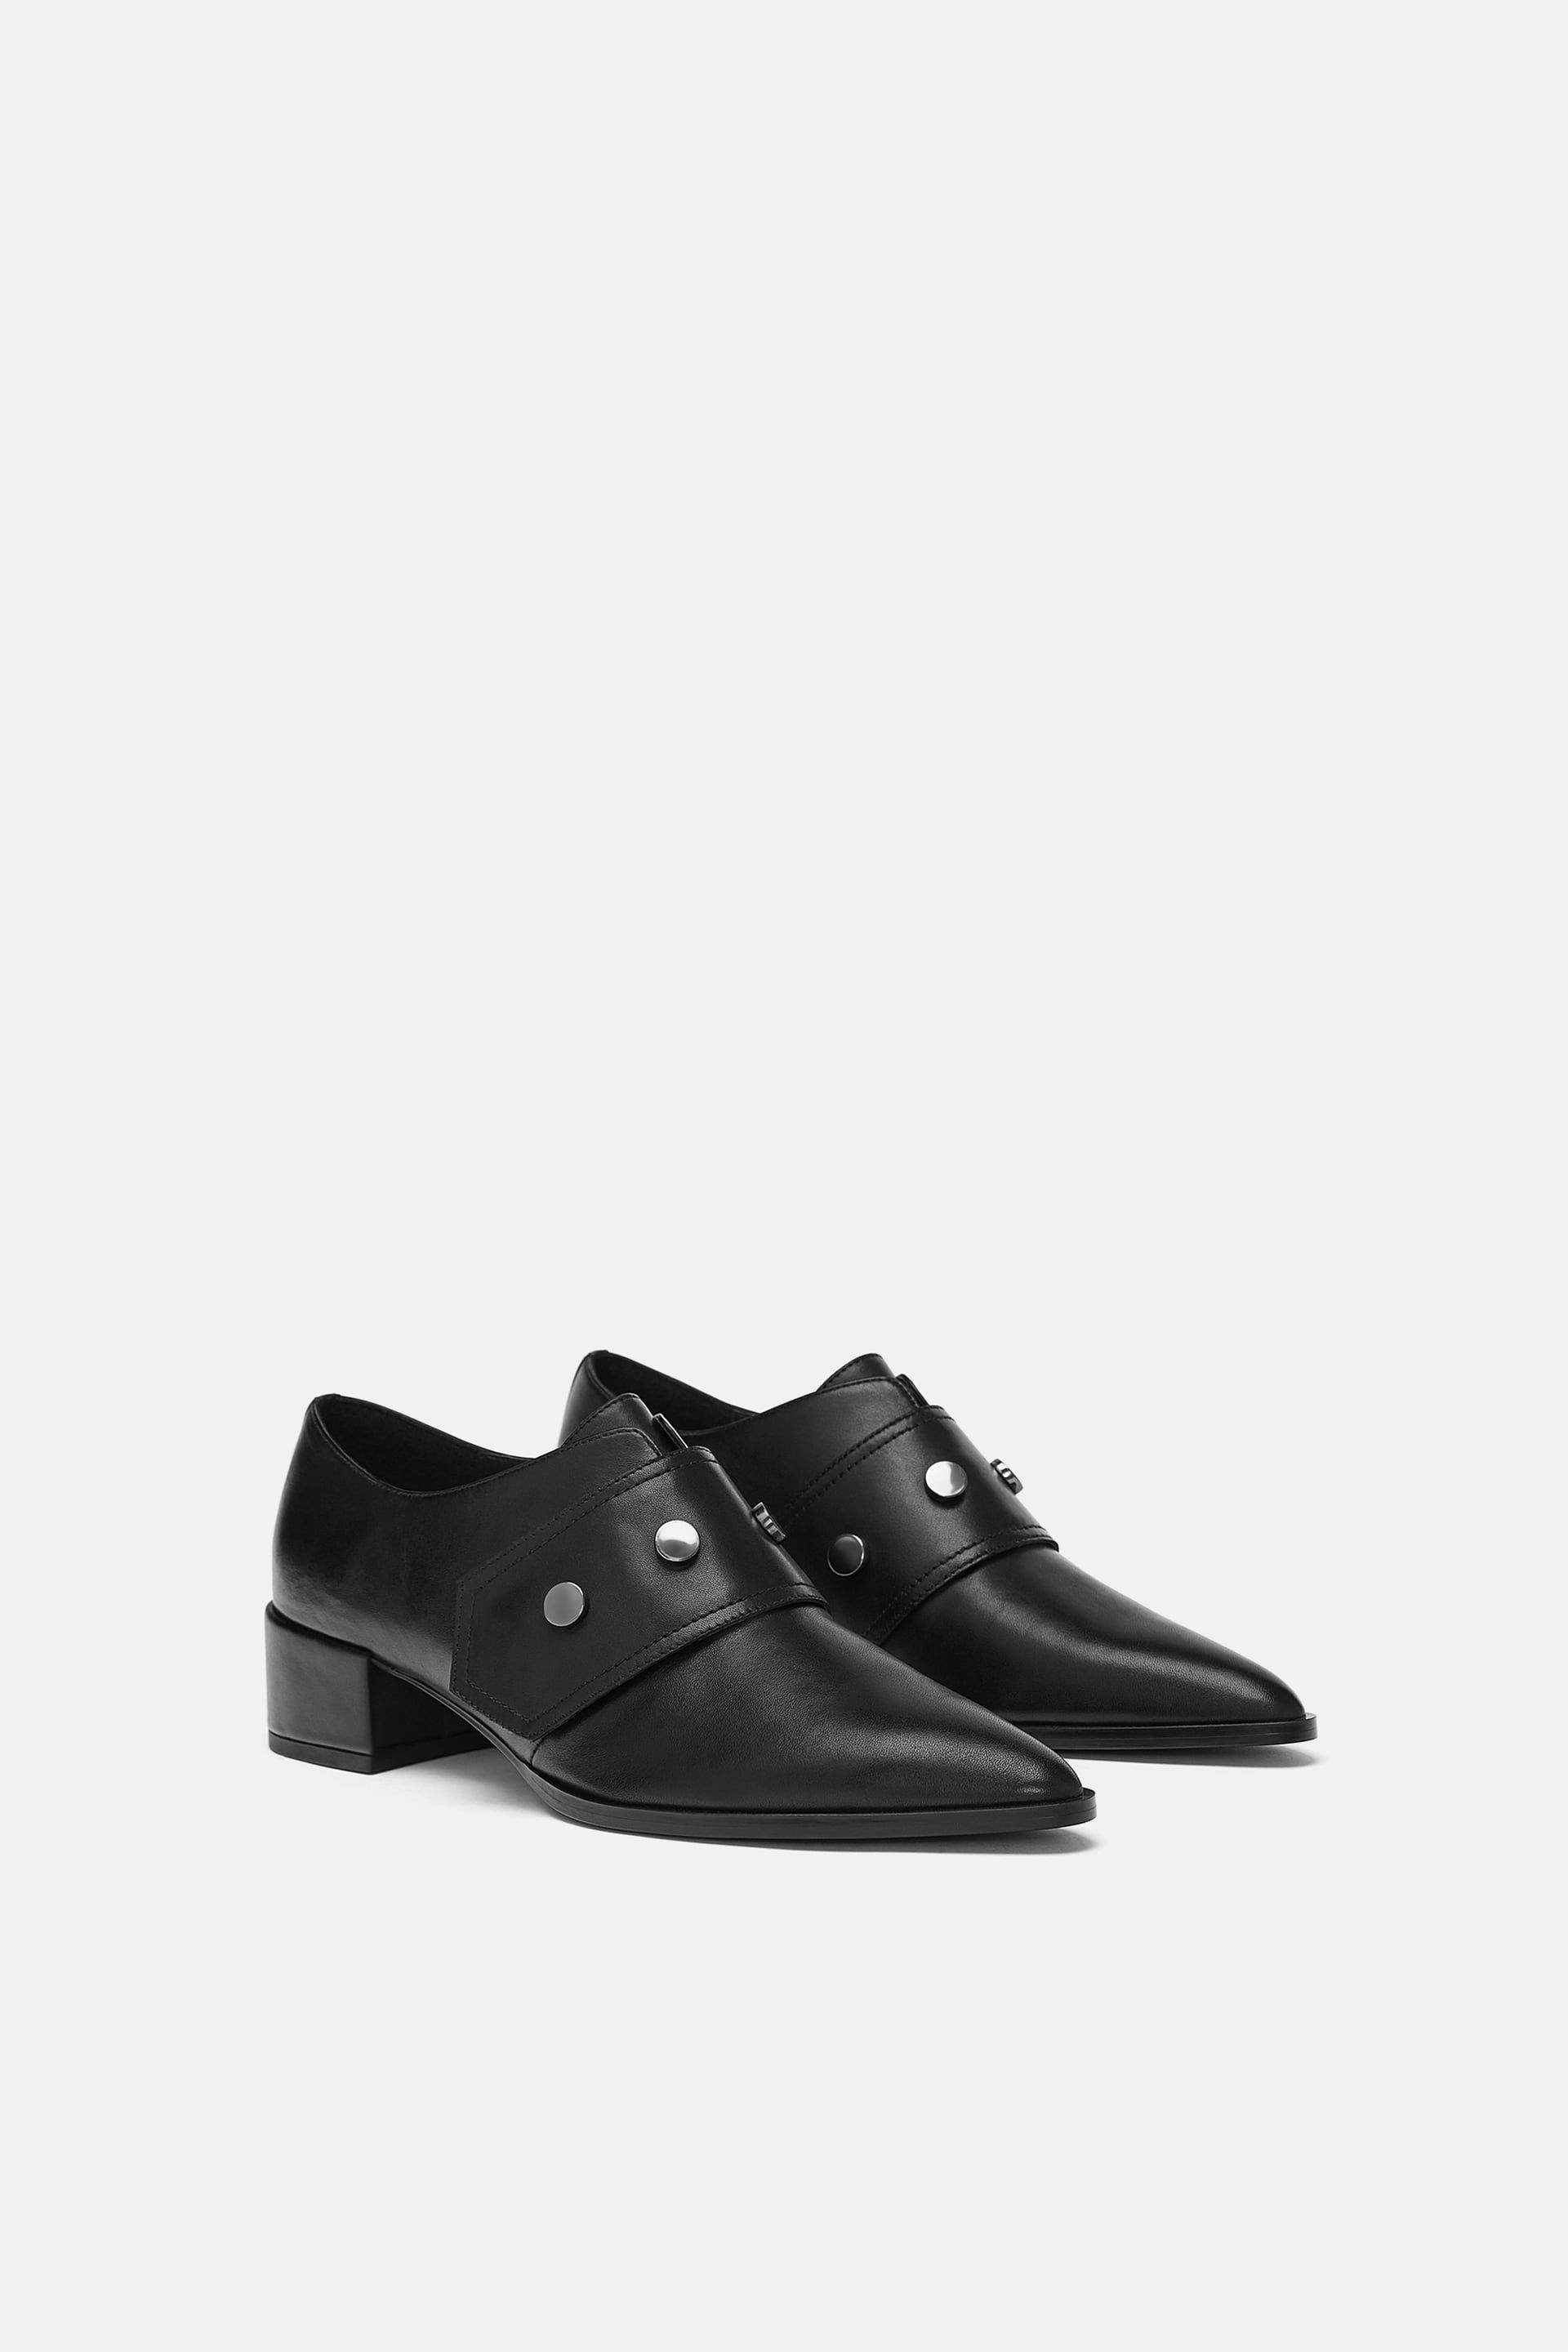 5f8f6abfd303 LEATHER POINTED MONK STRAP SHOES